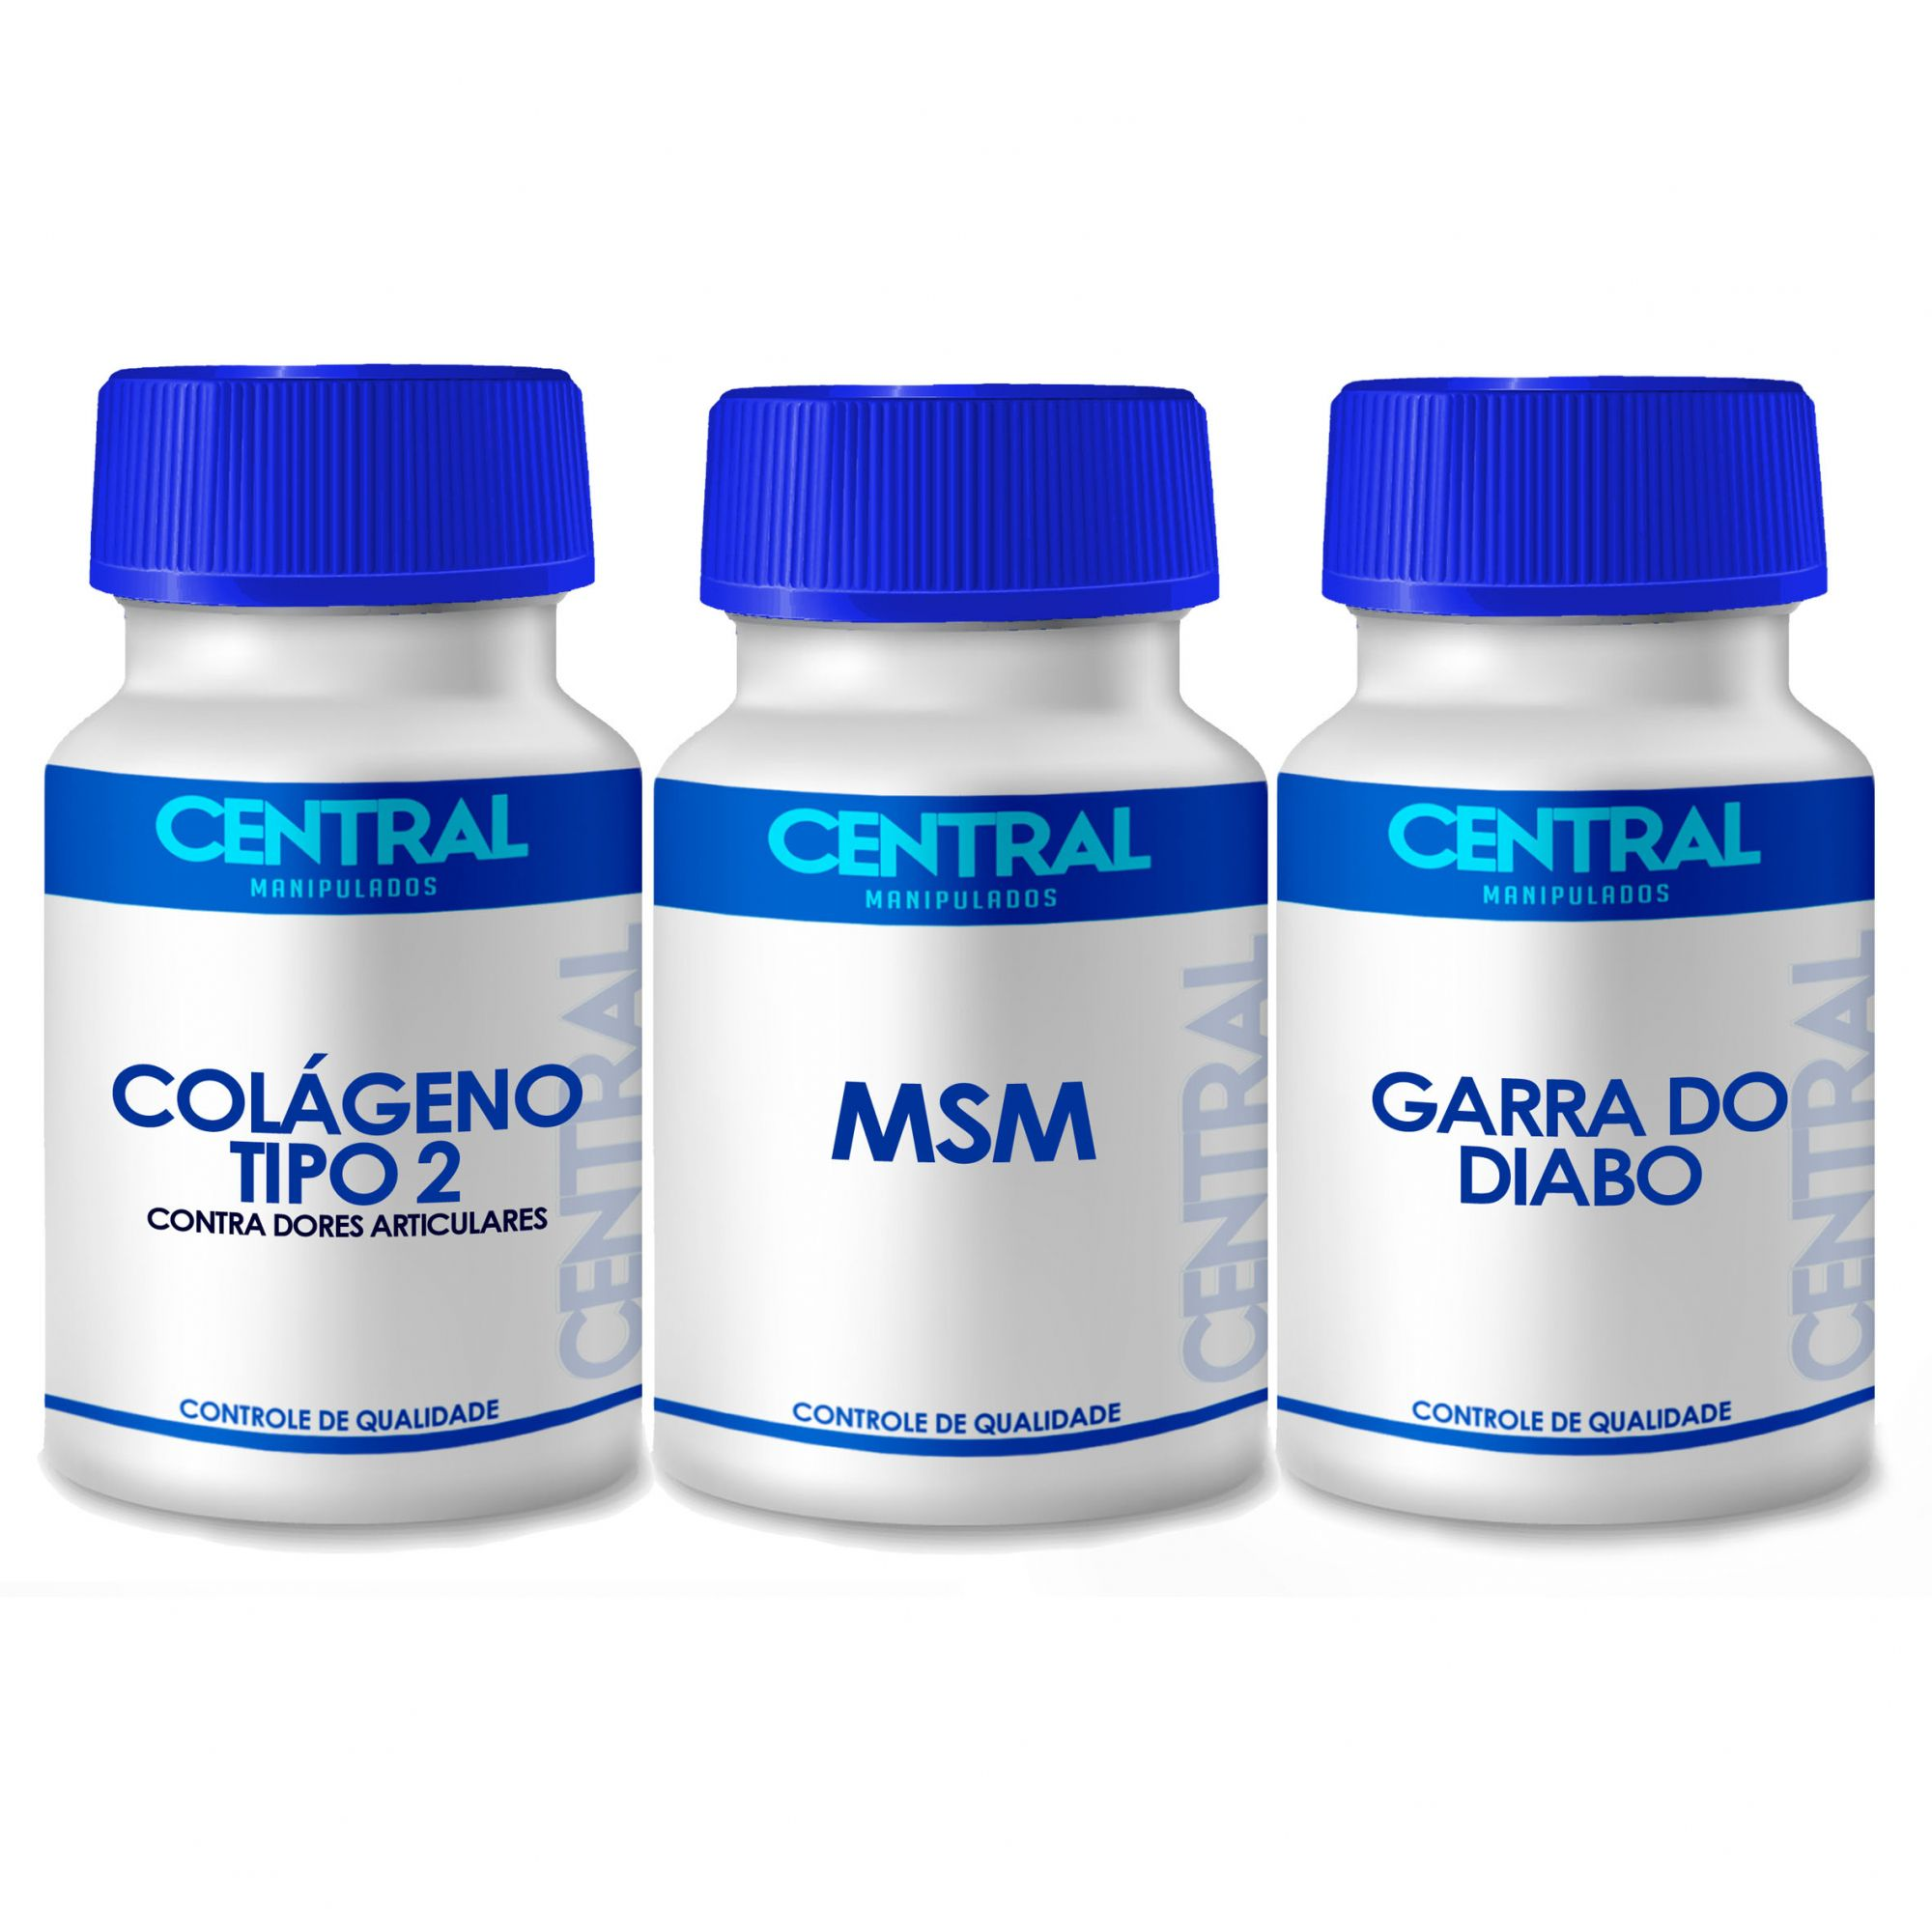 KIT Colágeno tipo 2 40mg 60 cáps + MSM 500mg 60 cáps + Garra do Diabo 400mg 60 cáps